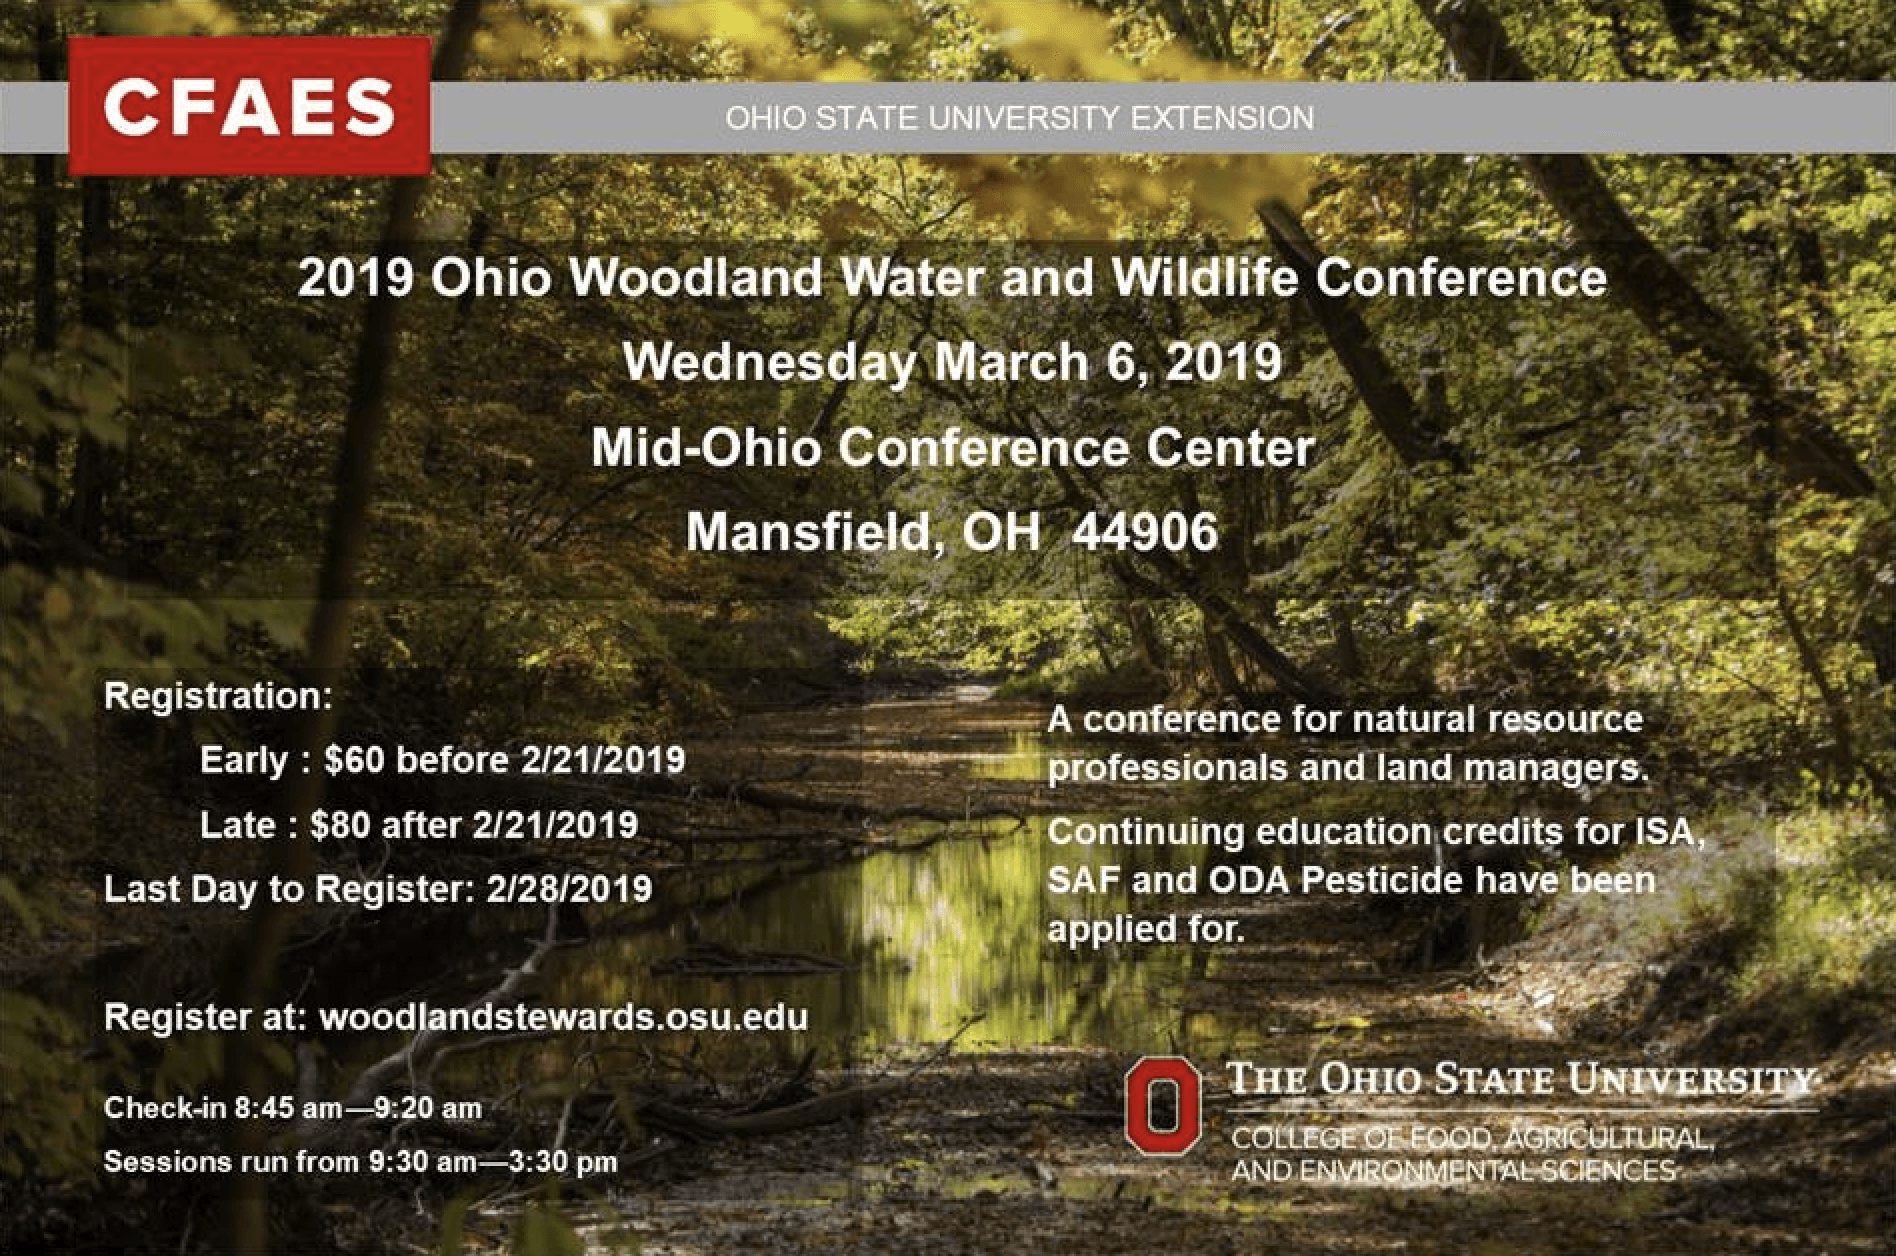 2019 Ohio Woodland Water and Wildlife Conference Flyer